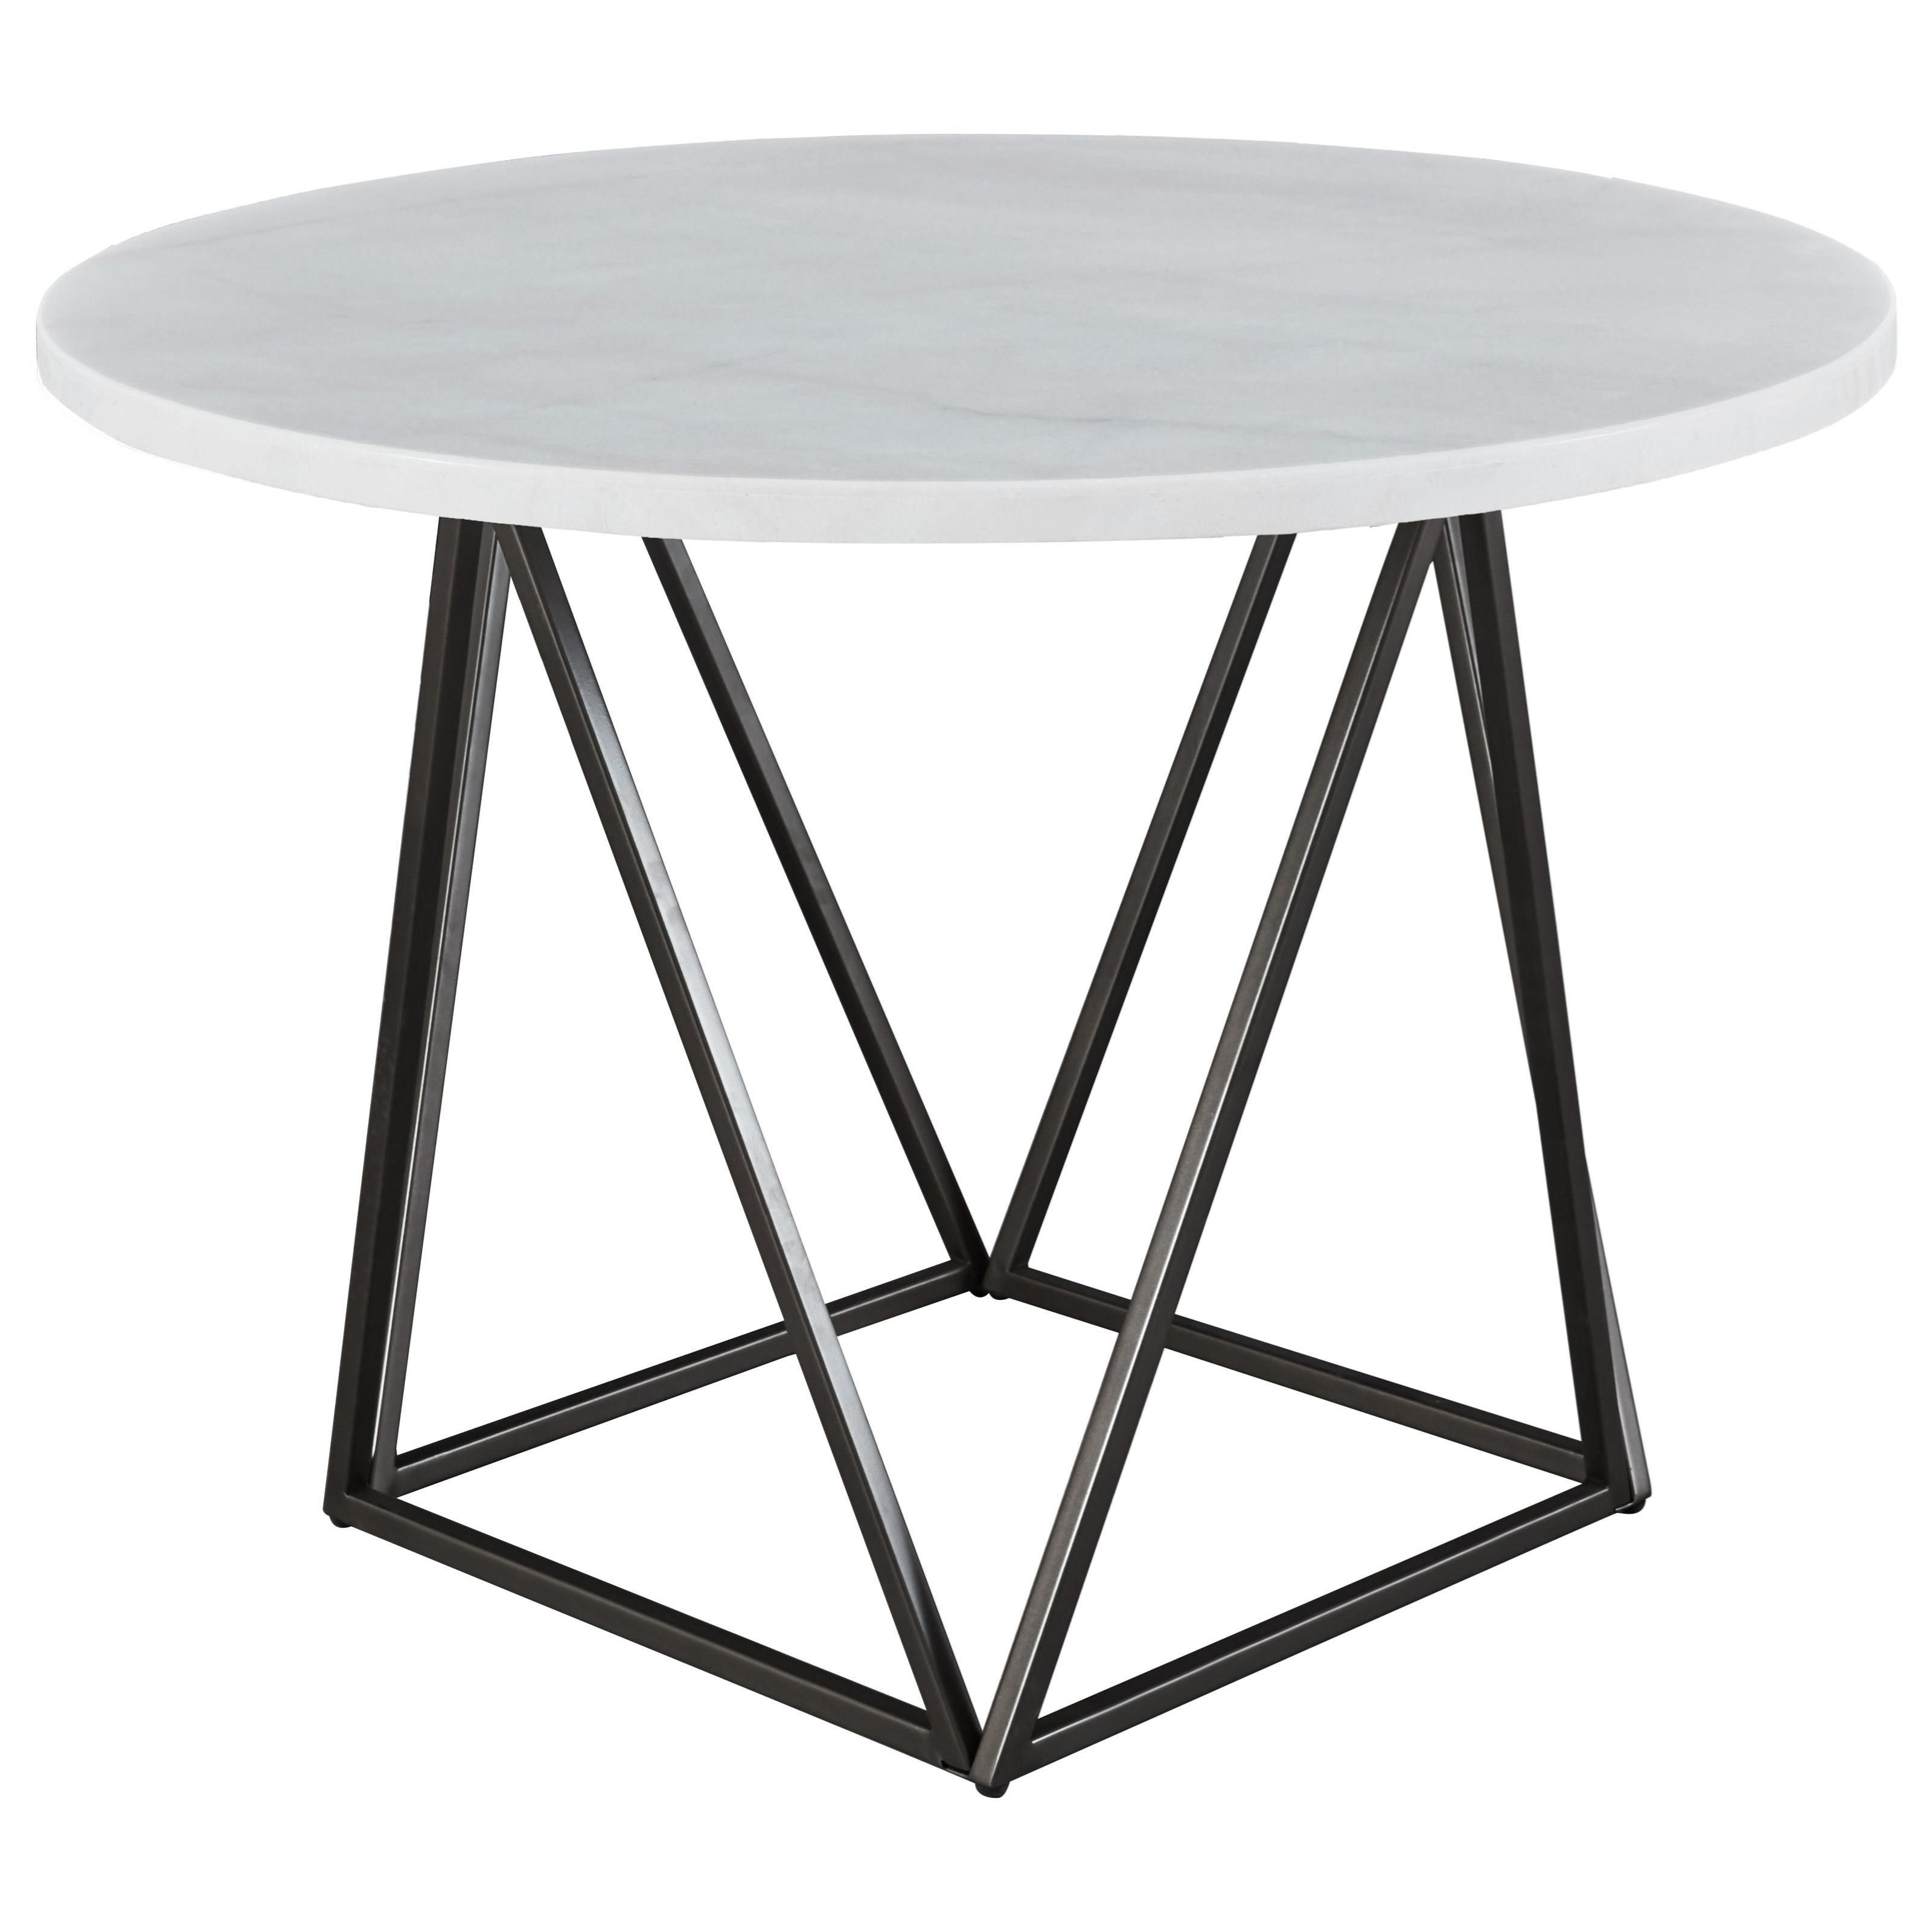 Ramona White Marble Top Round Dining Table